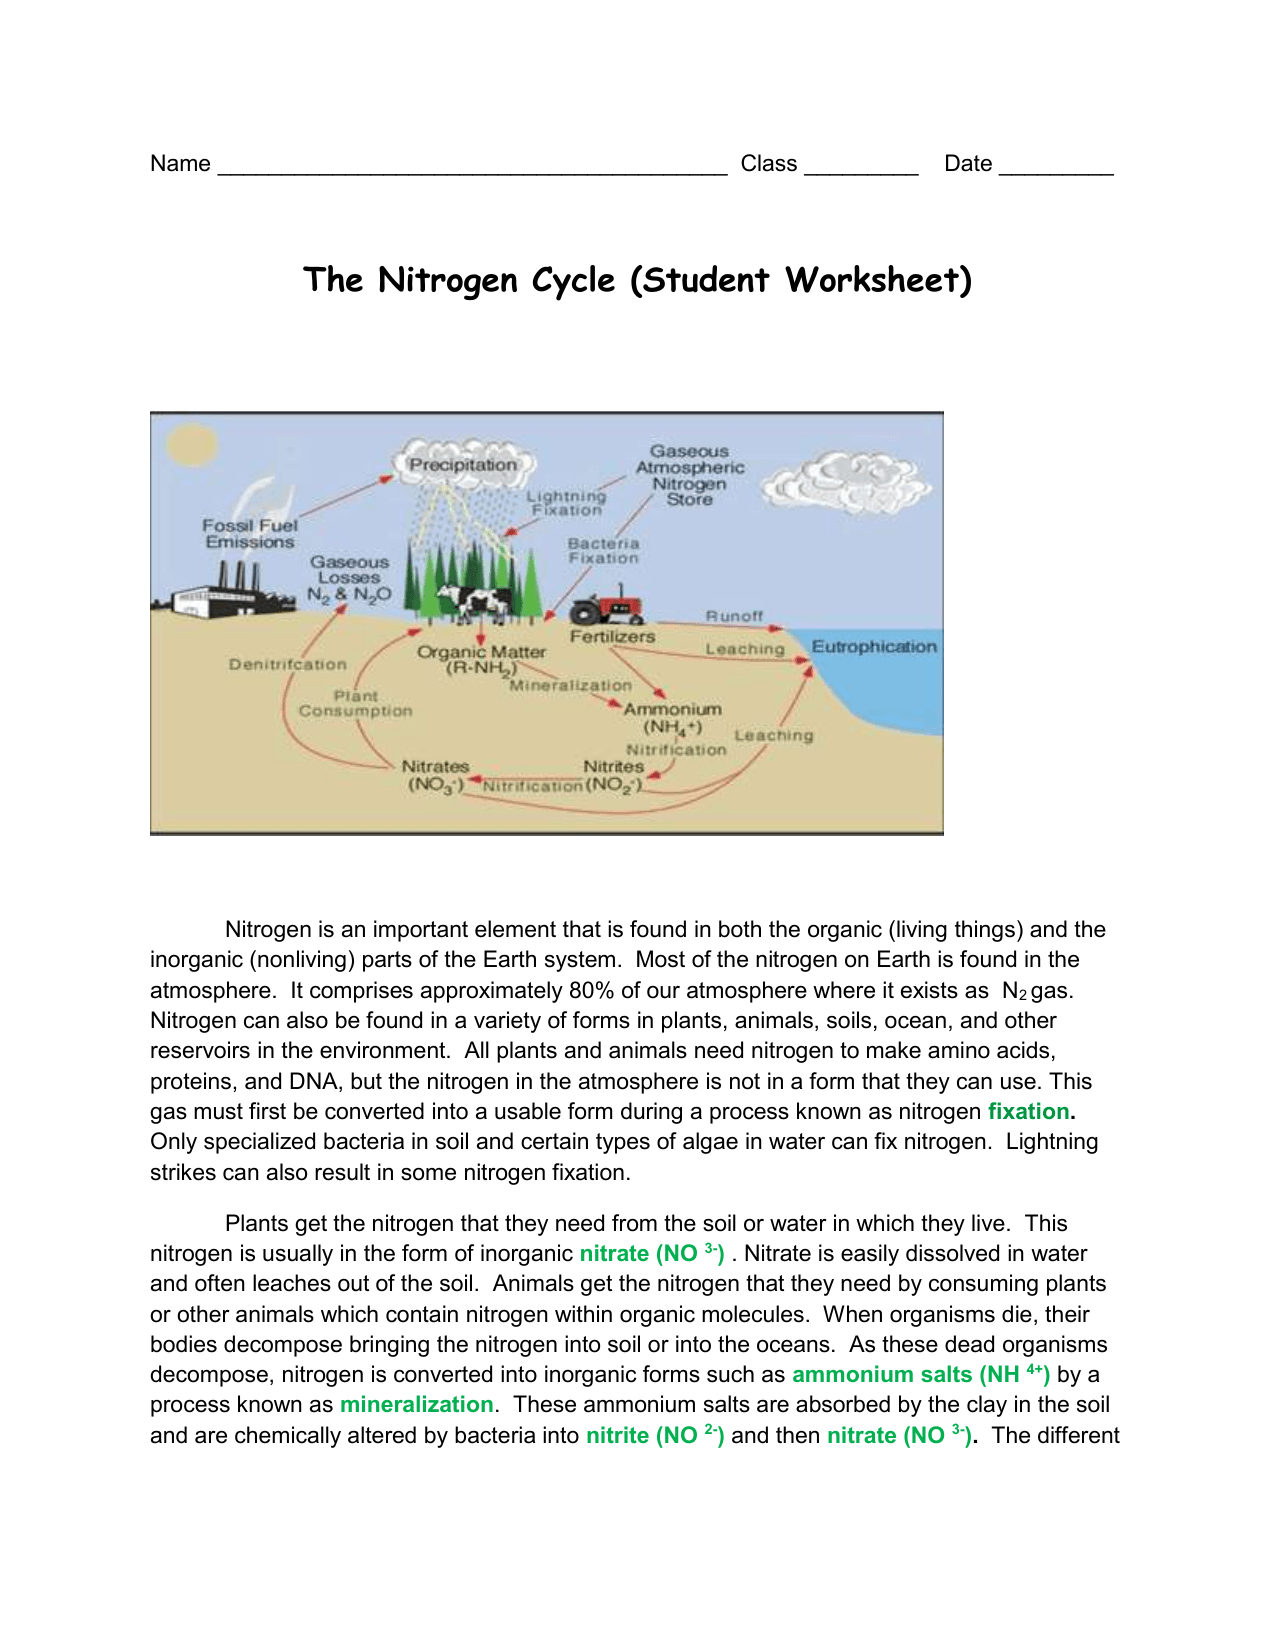 The Nitrogen Cycle Student Worksheet